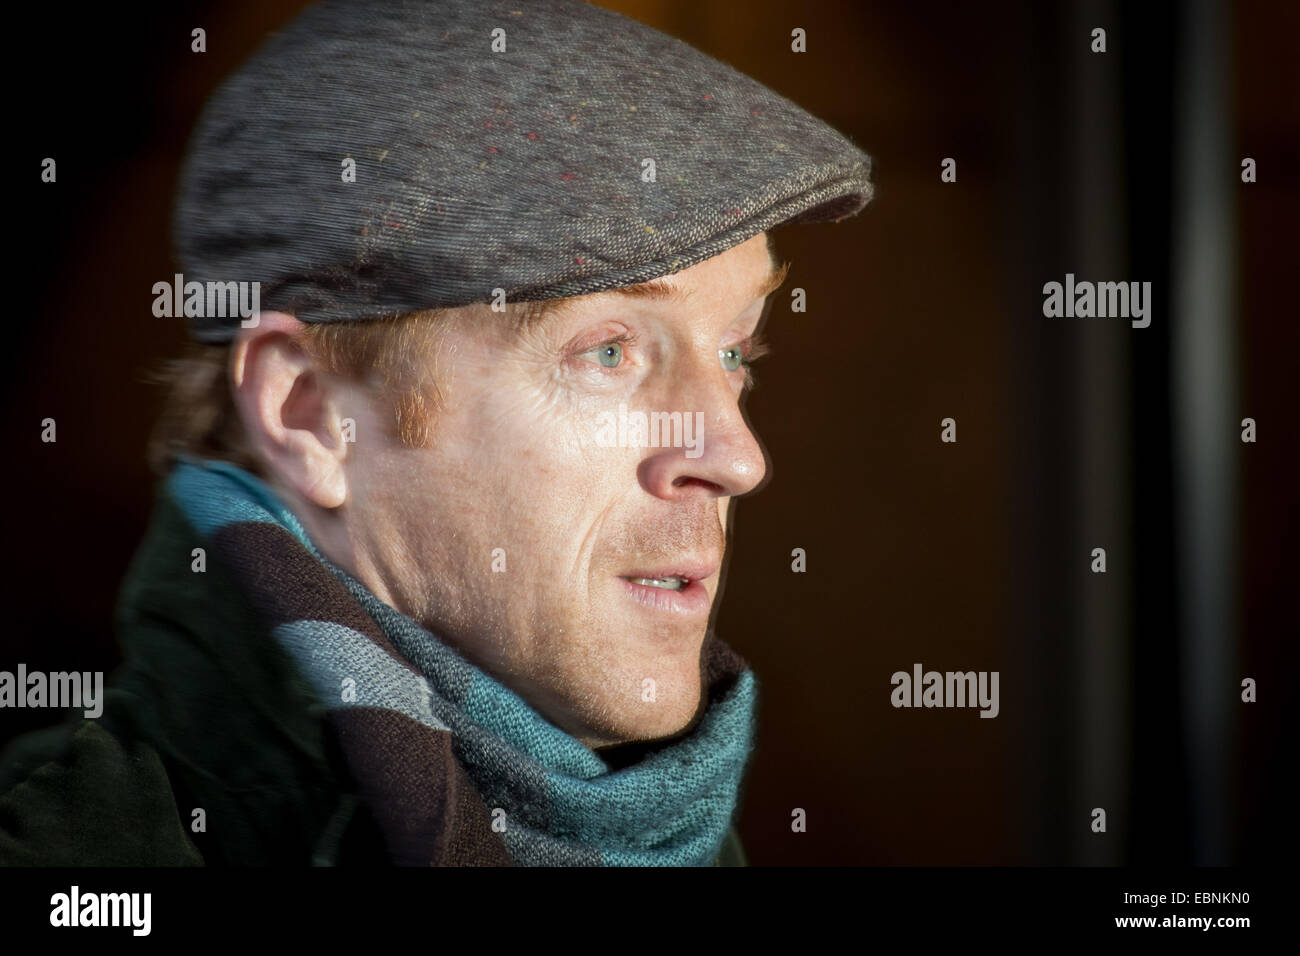 London, UK. 3rd Nov, 2014.  Damian Lewis attends the 22nd ICAP Charity Day Credit:  Guy Corbishley/Alamy Live News - Stock Image